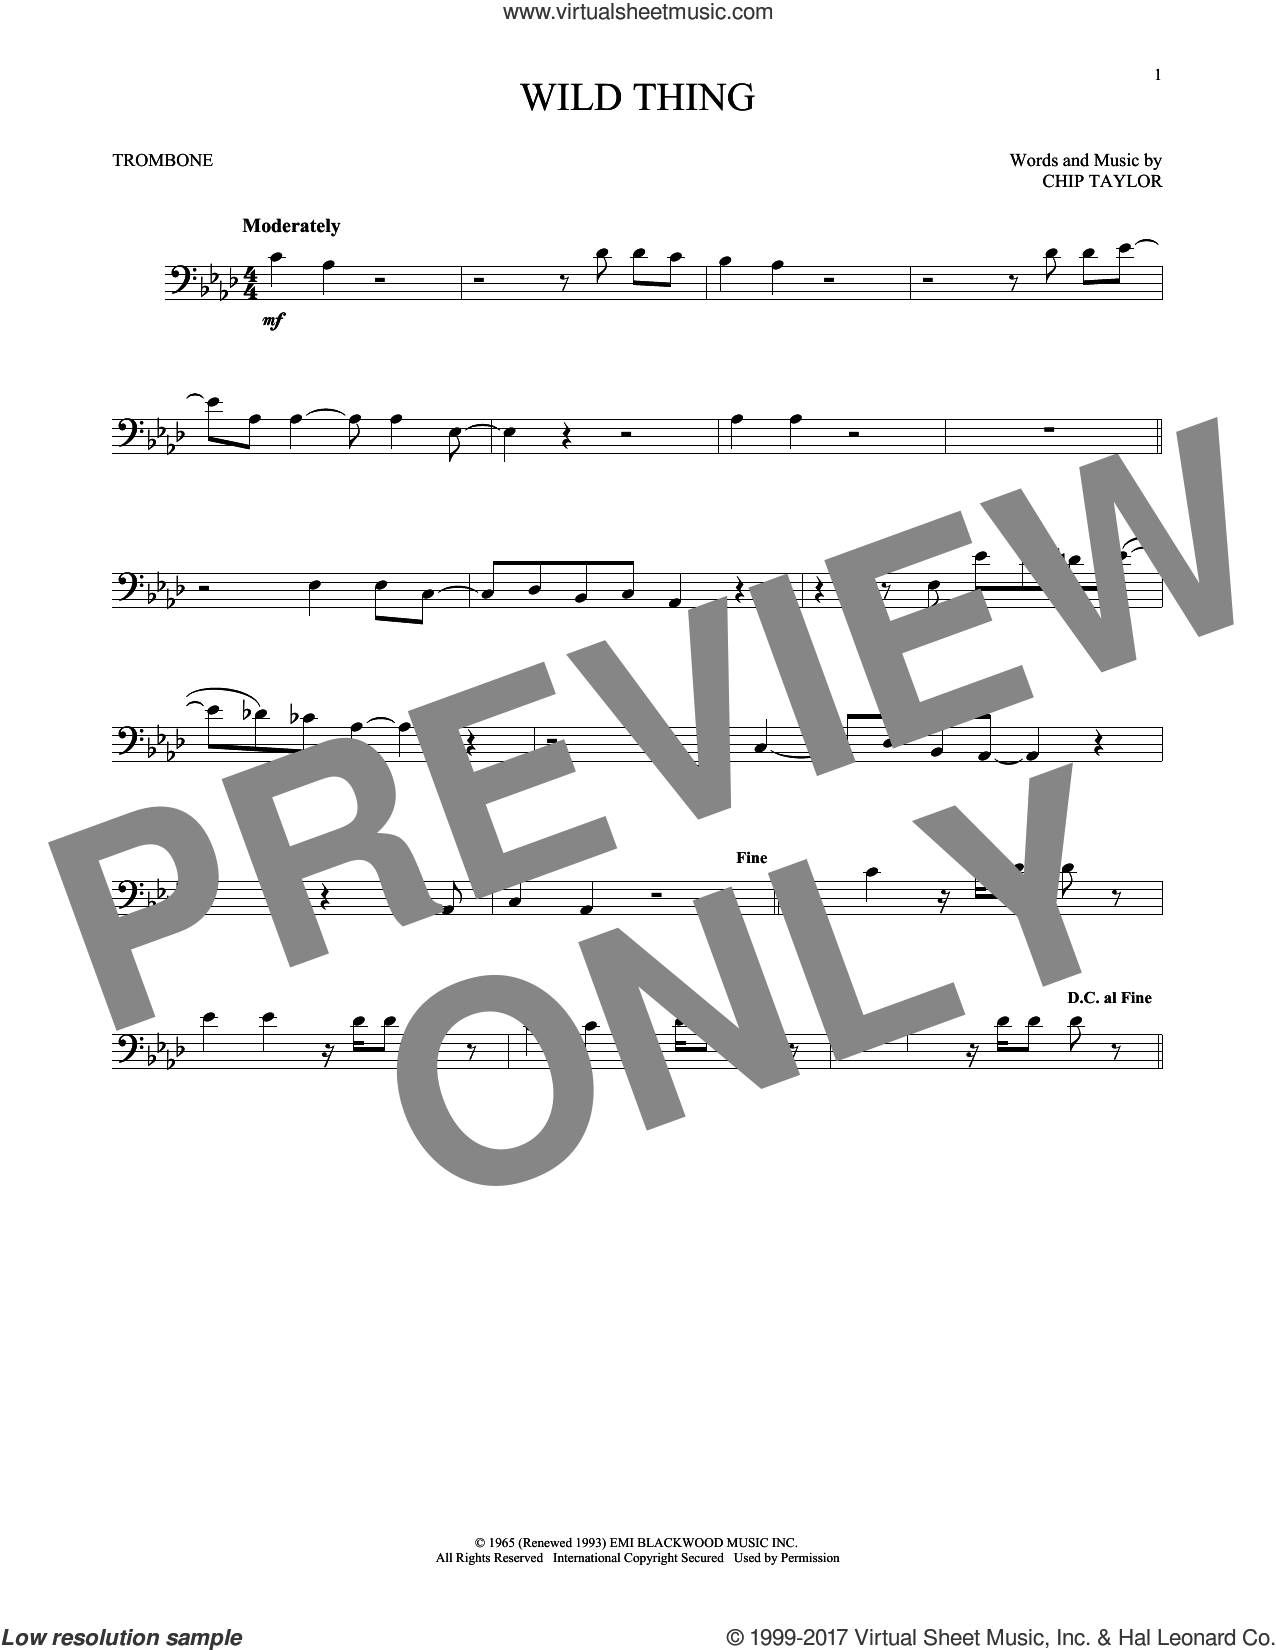 Wild Thing sheet music for trombone solo by The Troggs and Chip Taylor, intermediate skill level